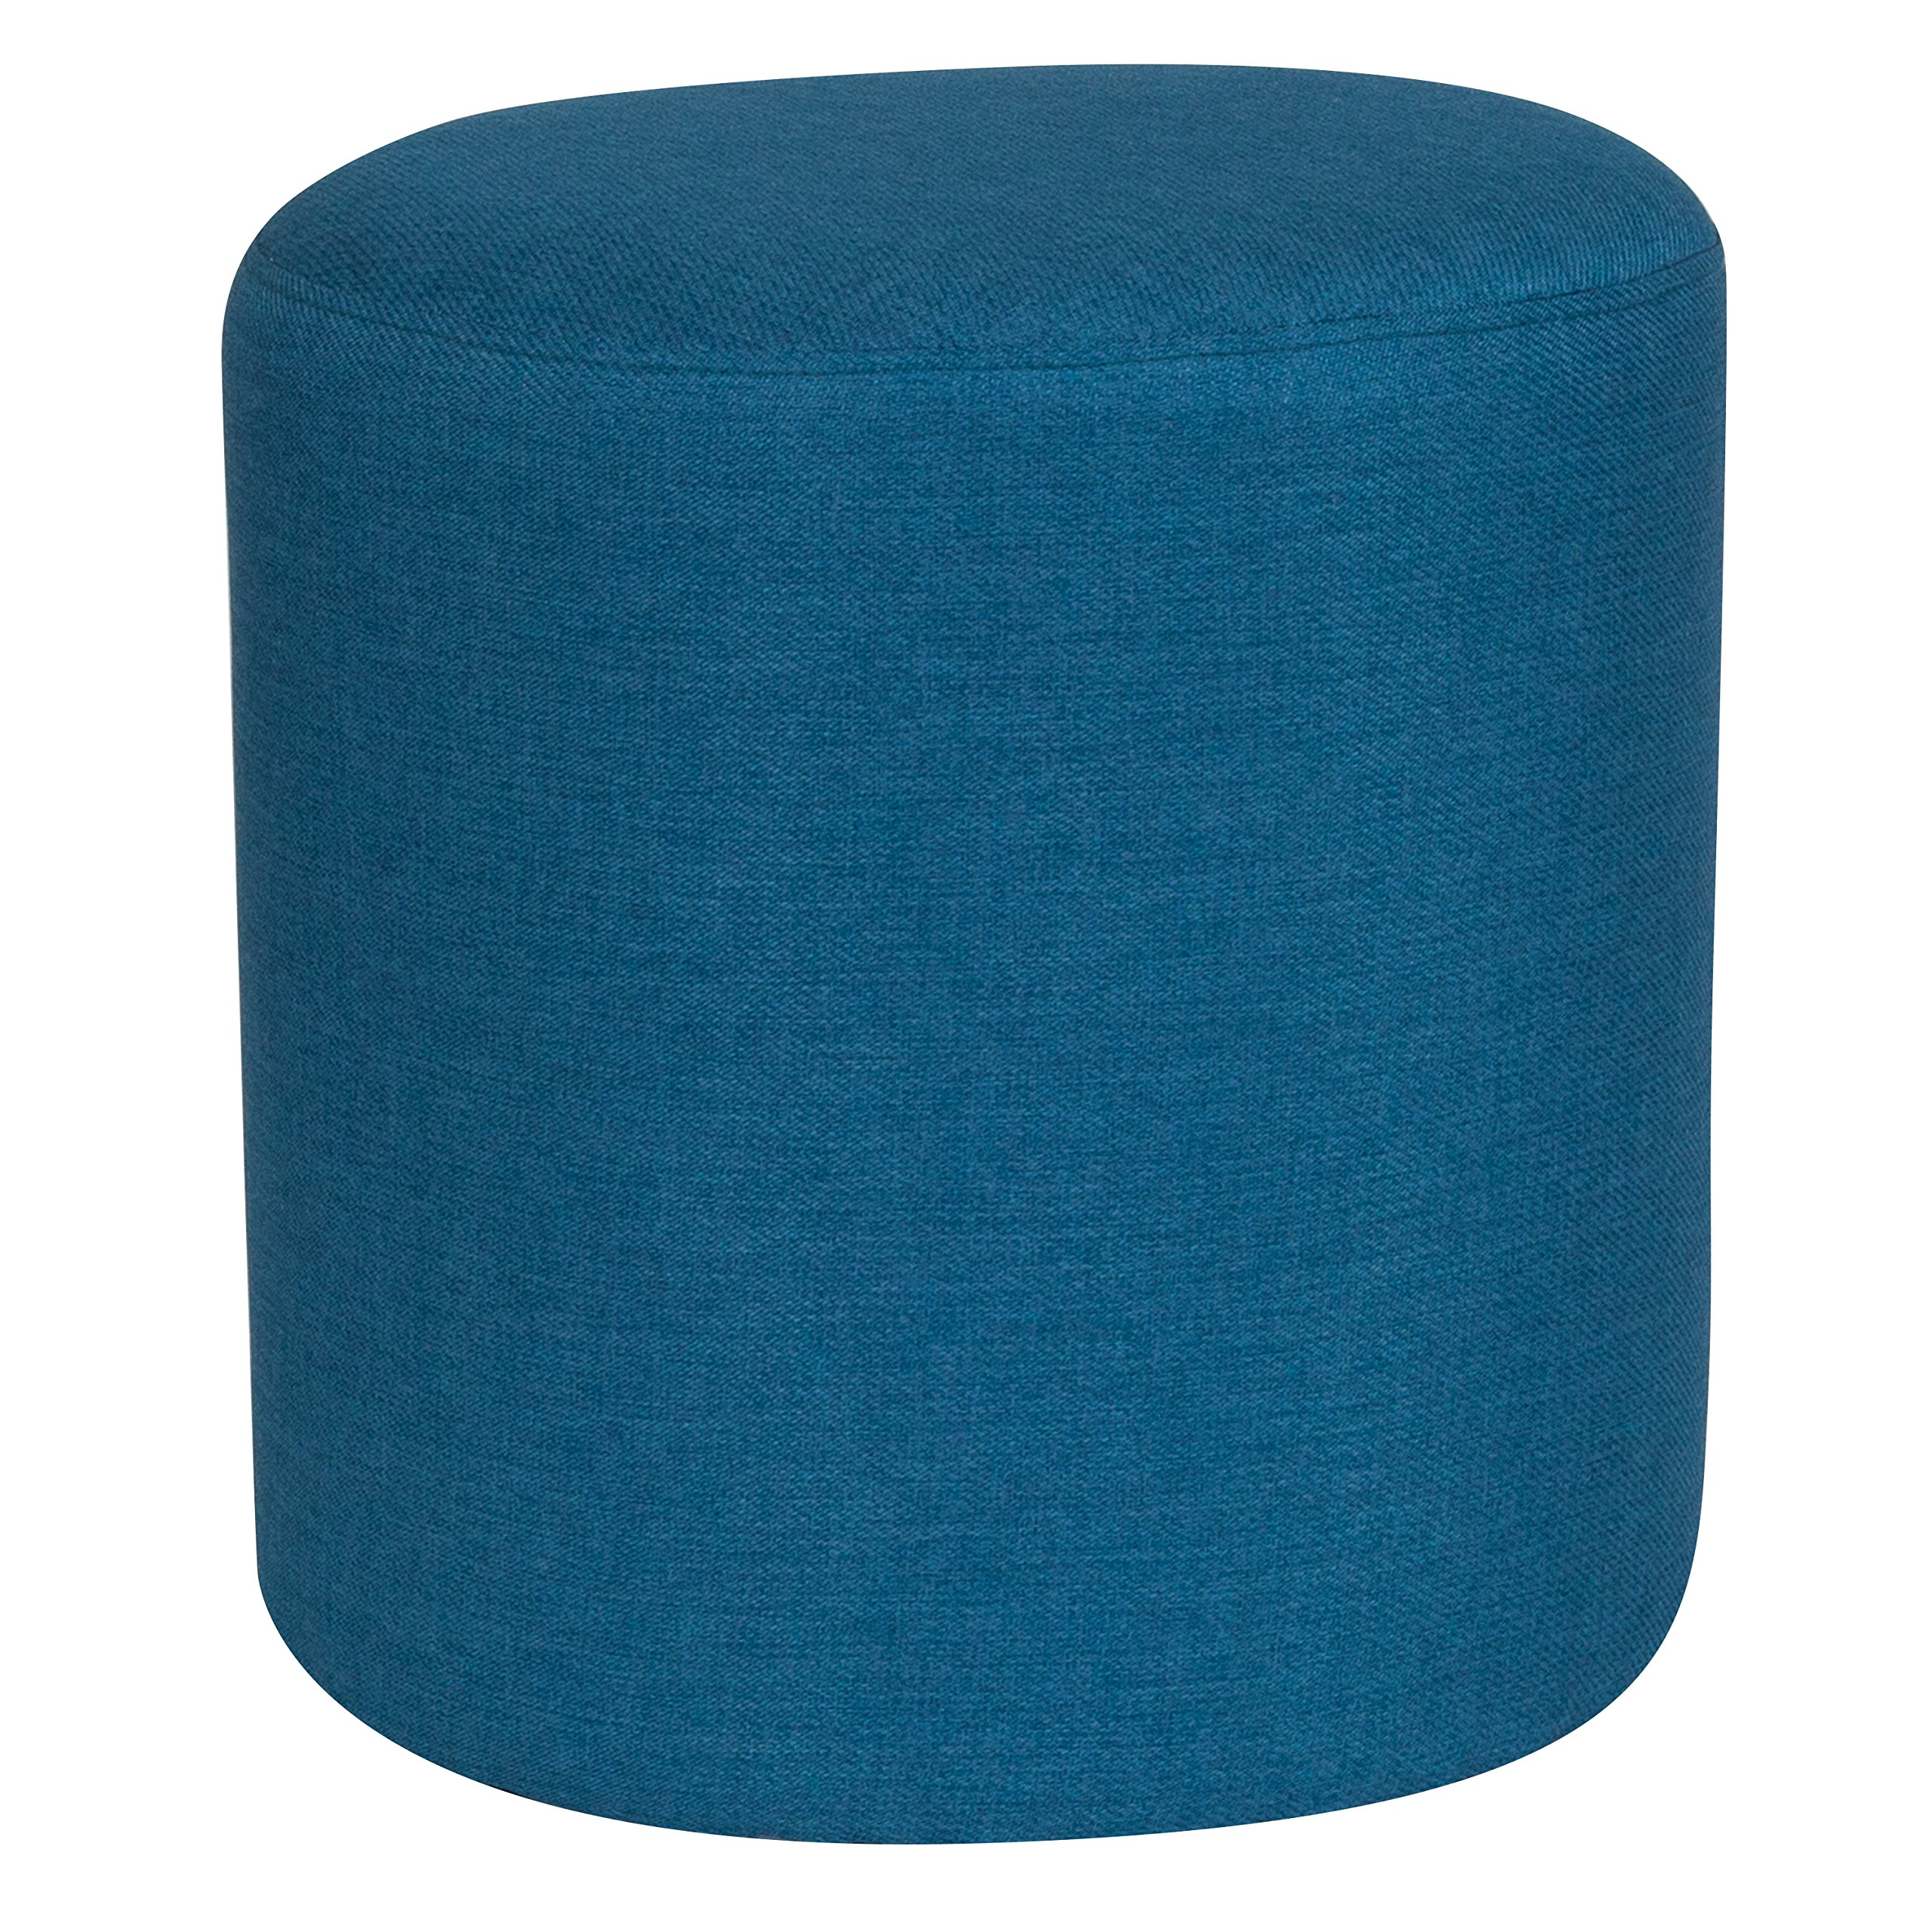 Flash Furniture Barrington Upholstered Round Ottoman Pouf in Blue Fabric by Flash Furniture